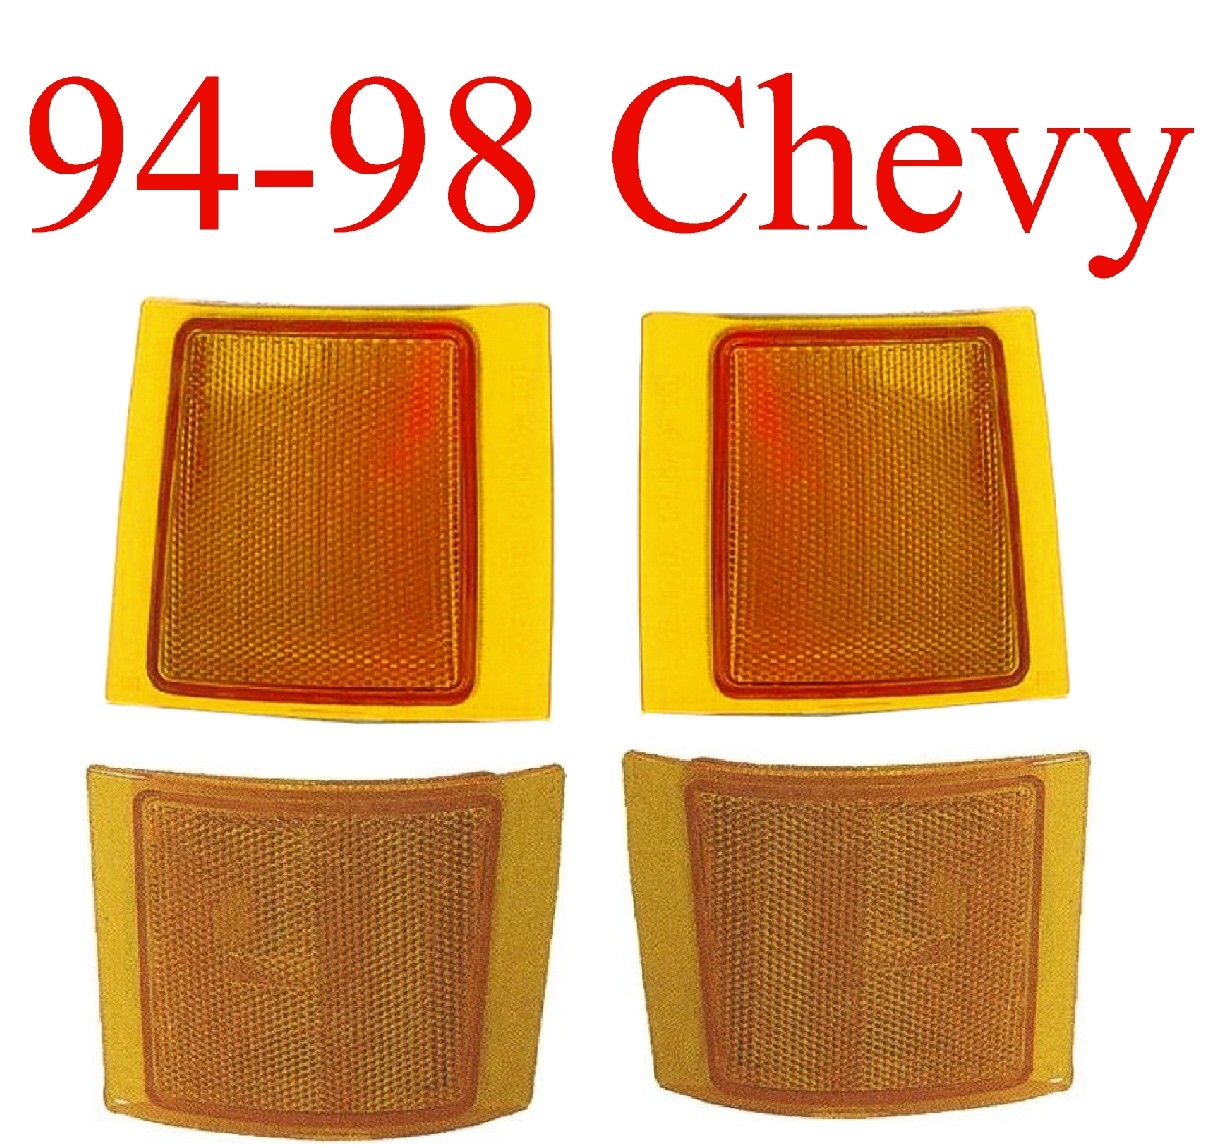 94-98 Chevy 4Pc Amber Side Light Kit